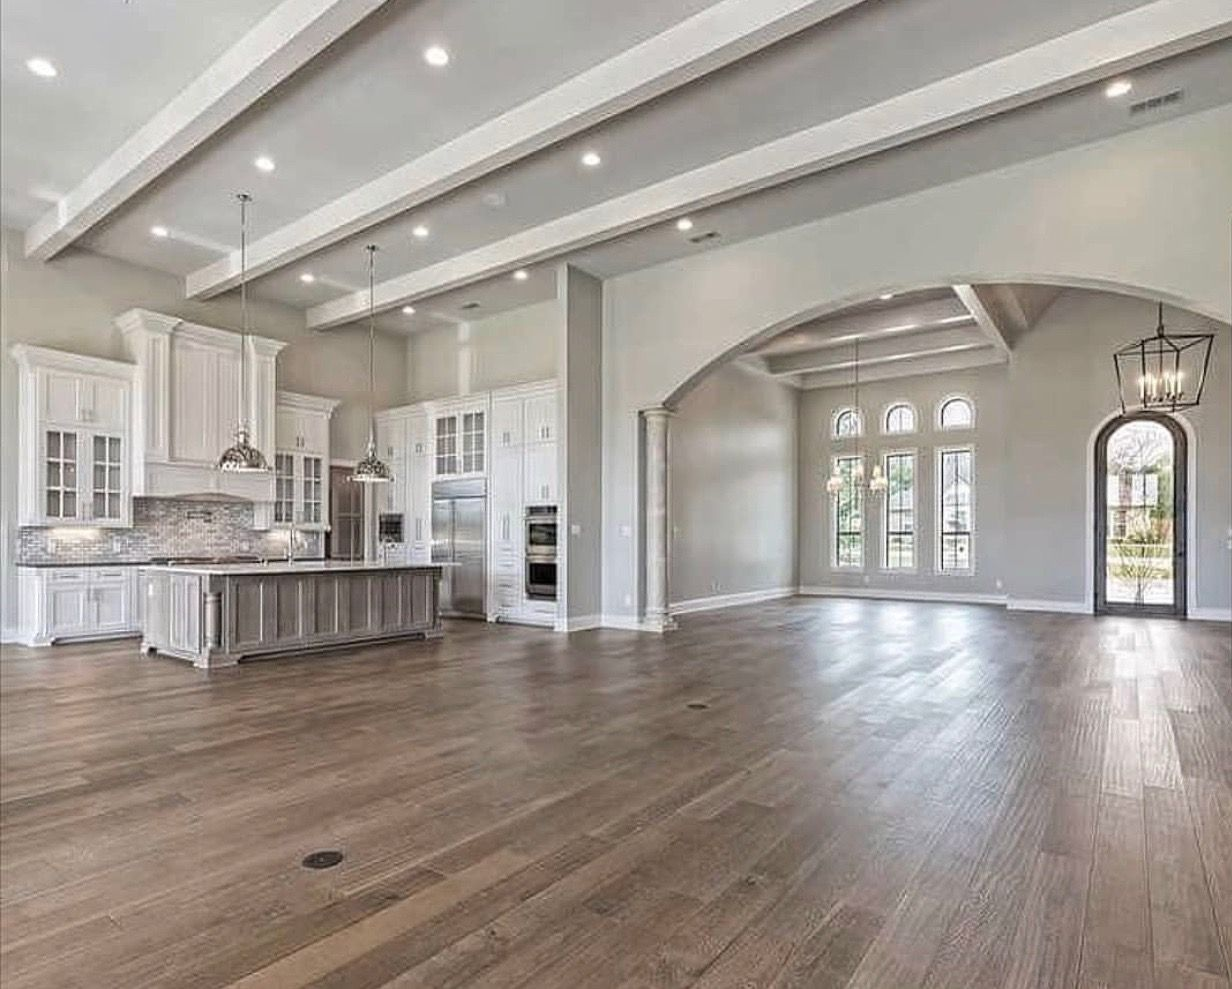 Pin By Valerie Carroll On Homes Dream House Ideas Kitchens Open Concept Floor Plans House Design